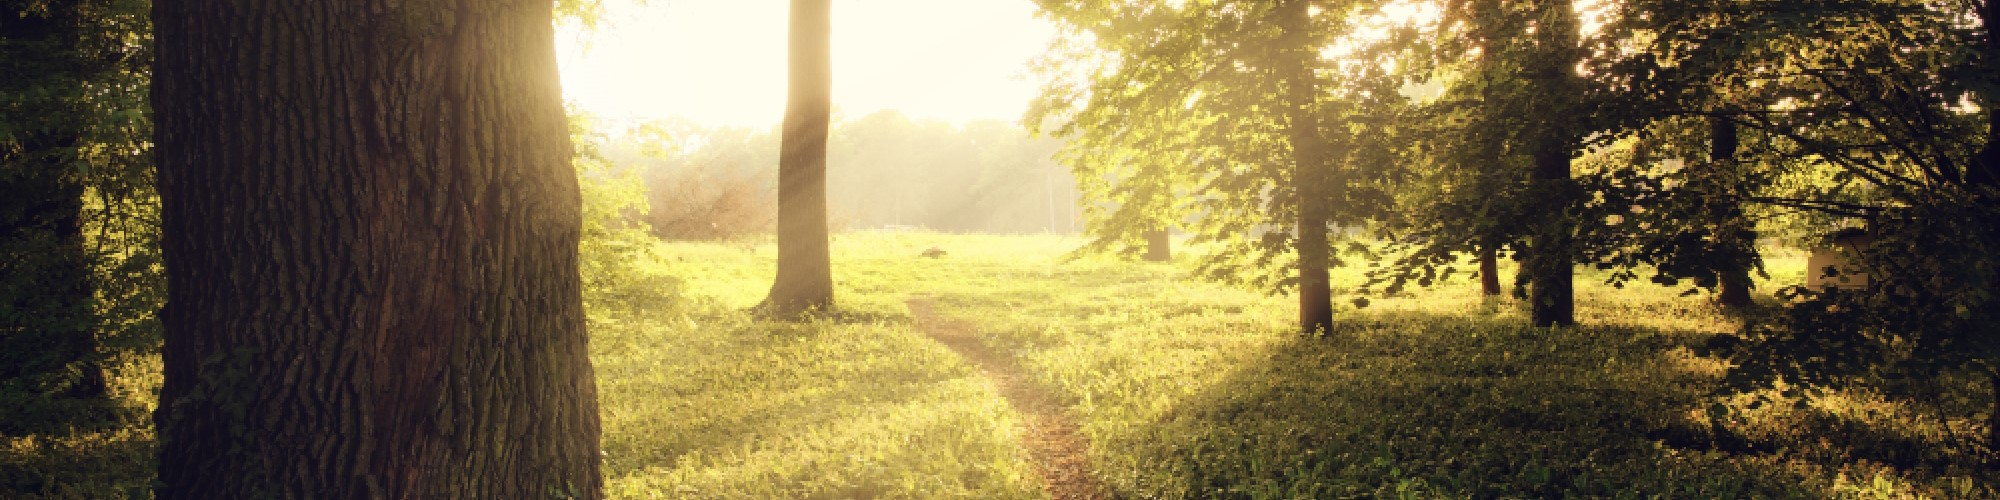 sunlight-on-green-forest-W3R2FM5_cropped